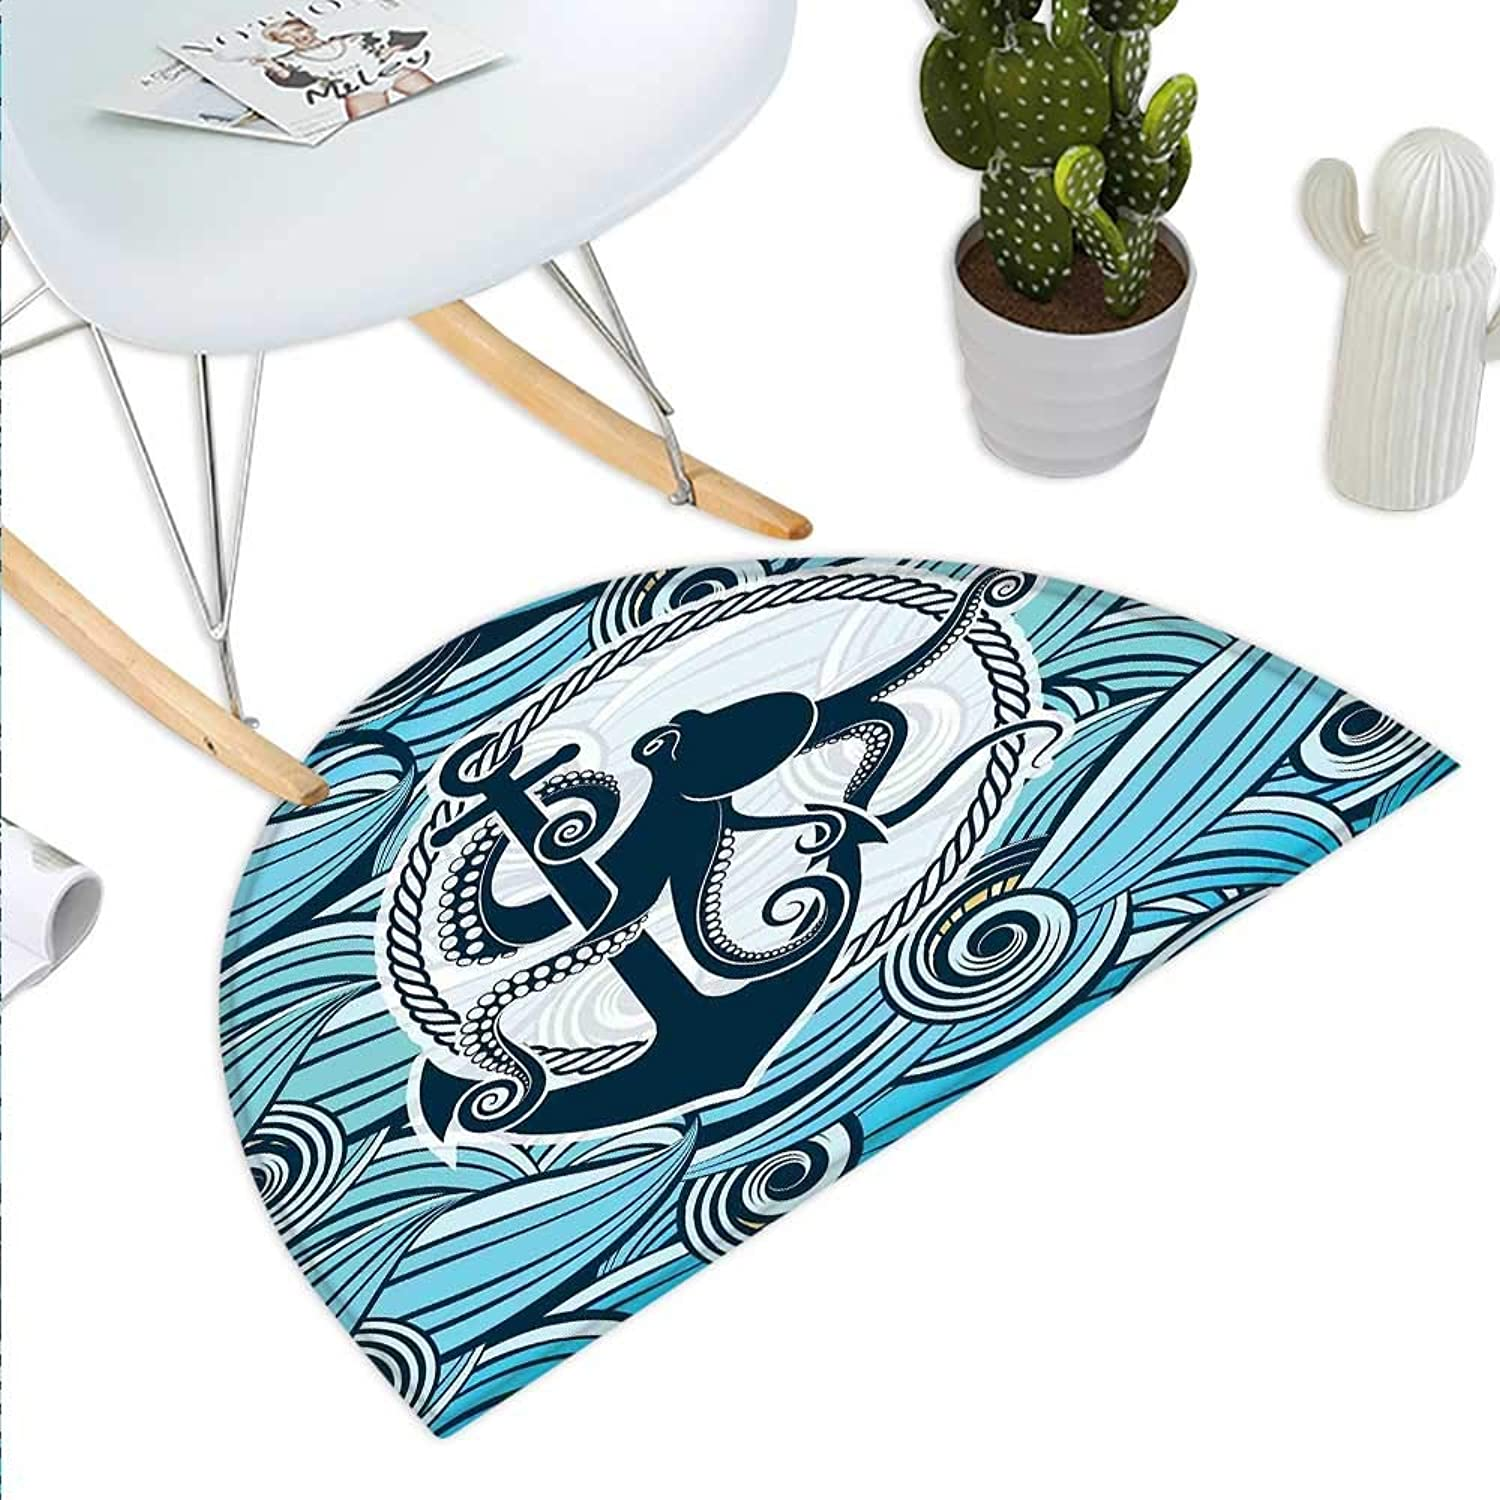 Octopus Semicircle Doormat Symbol of Octopus Against The Background of Stylized Sea Waves Nautical Design Halfmoon doormats H 35.4  xD 53.1  Multicolor